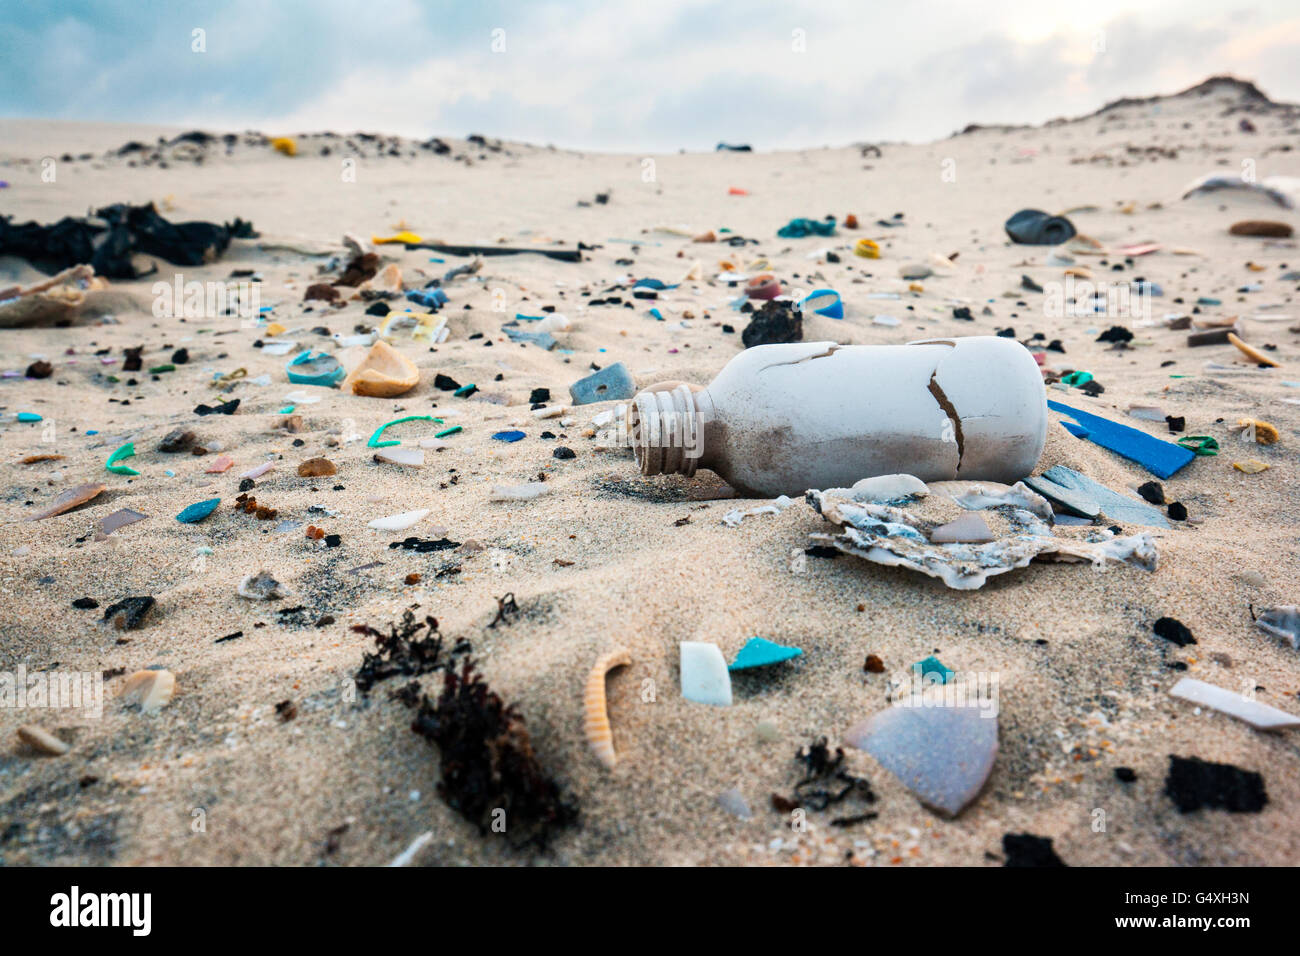 Trash on Beach - South Padre Island, Texas, USA - Stock Image